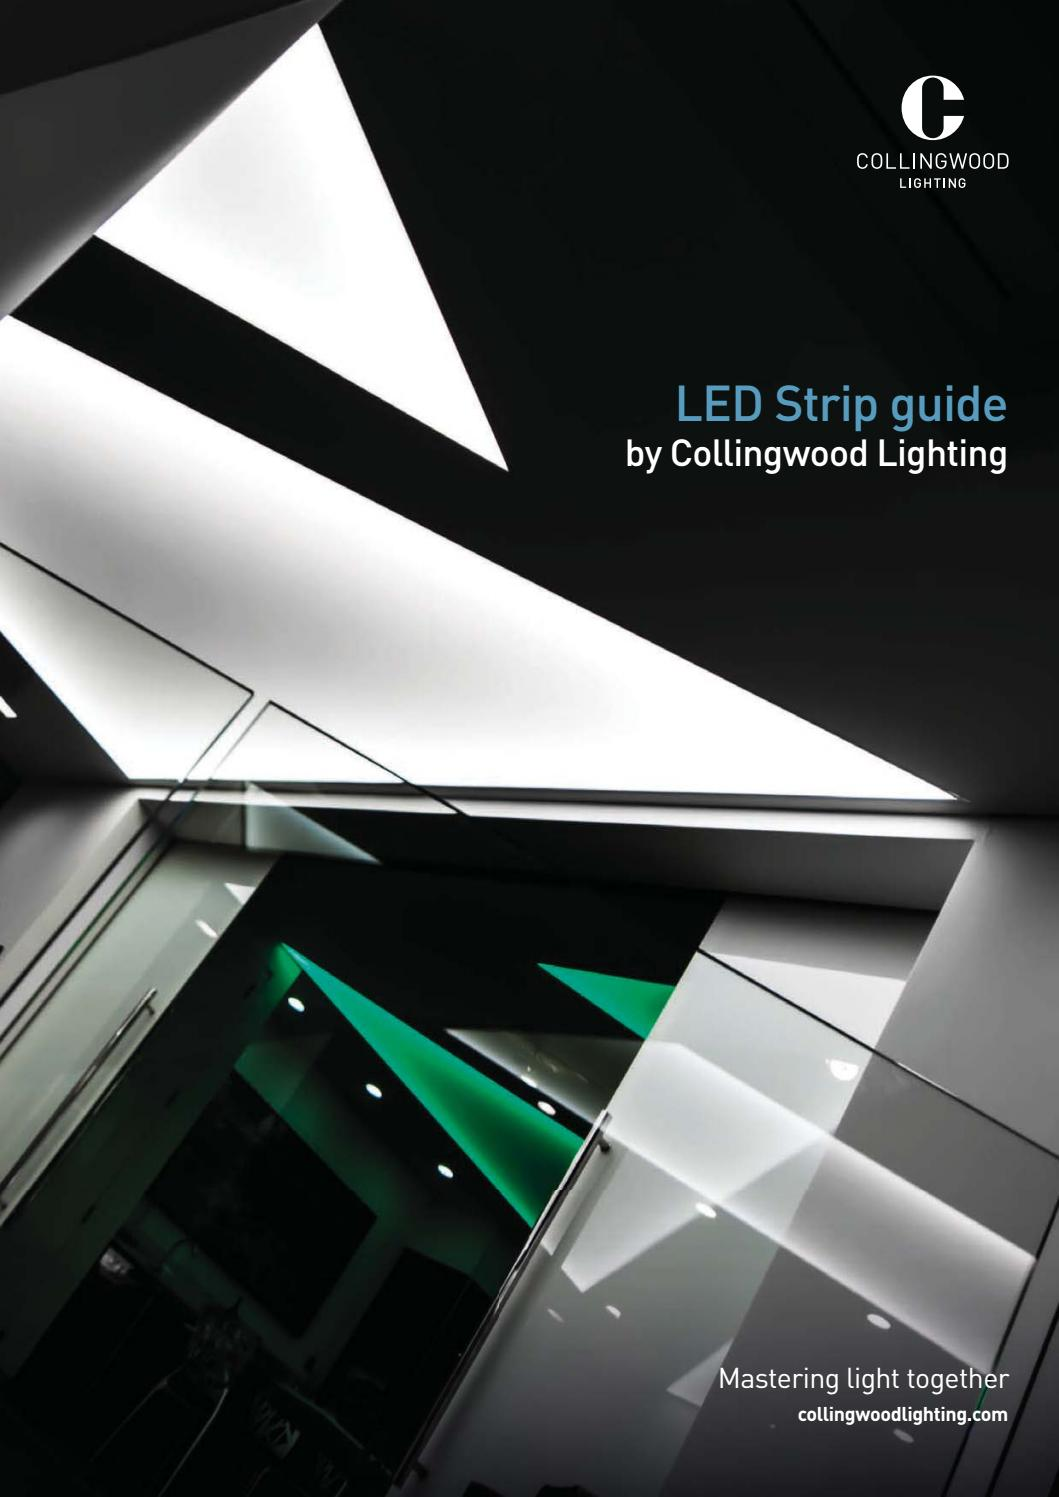 Fabulous Led Strip Guide By Collingwood Lighting Issuu Wiring Digital Resources Remcakbiperorg